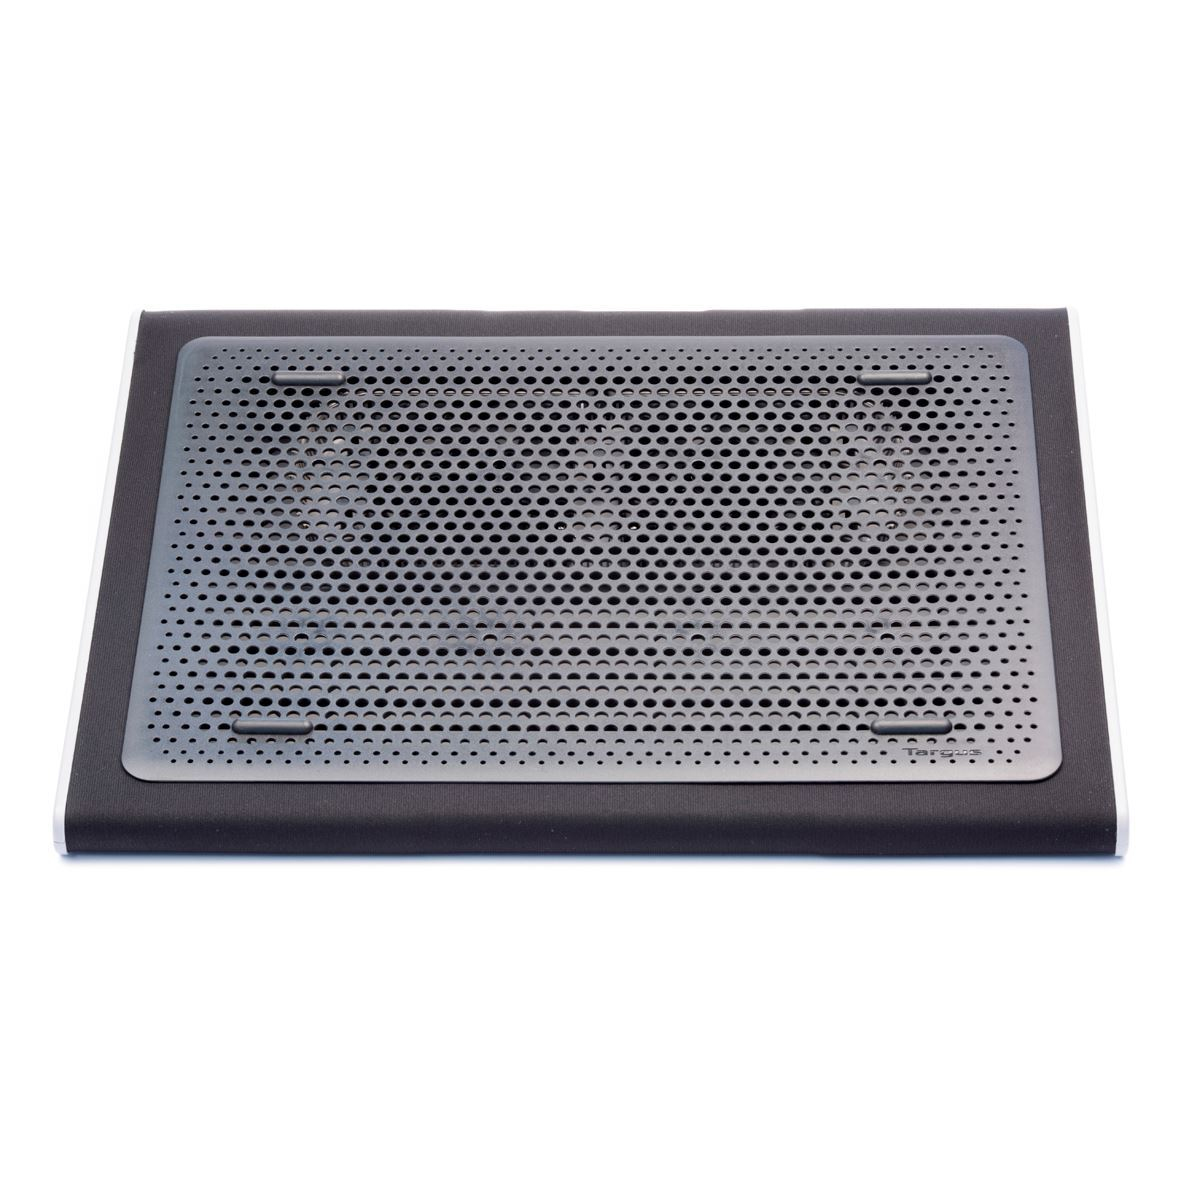 Lap Chill Mat Grey Awe55gl - WC01